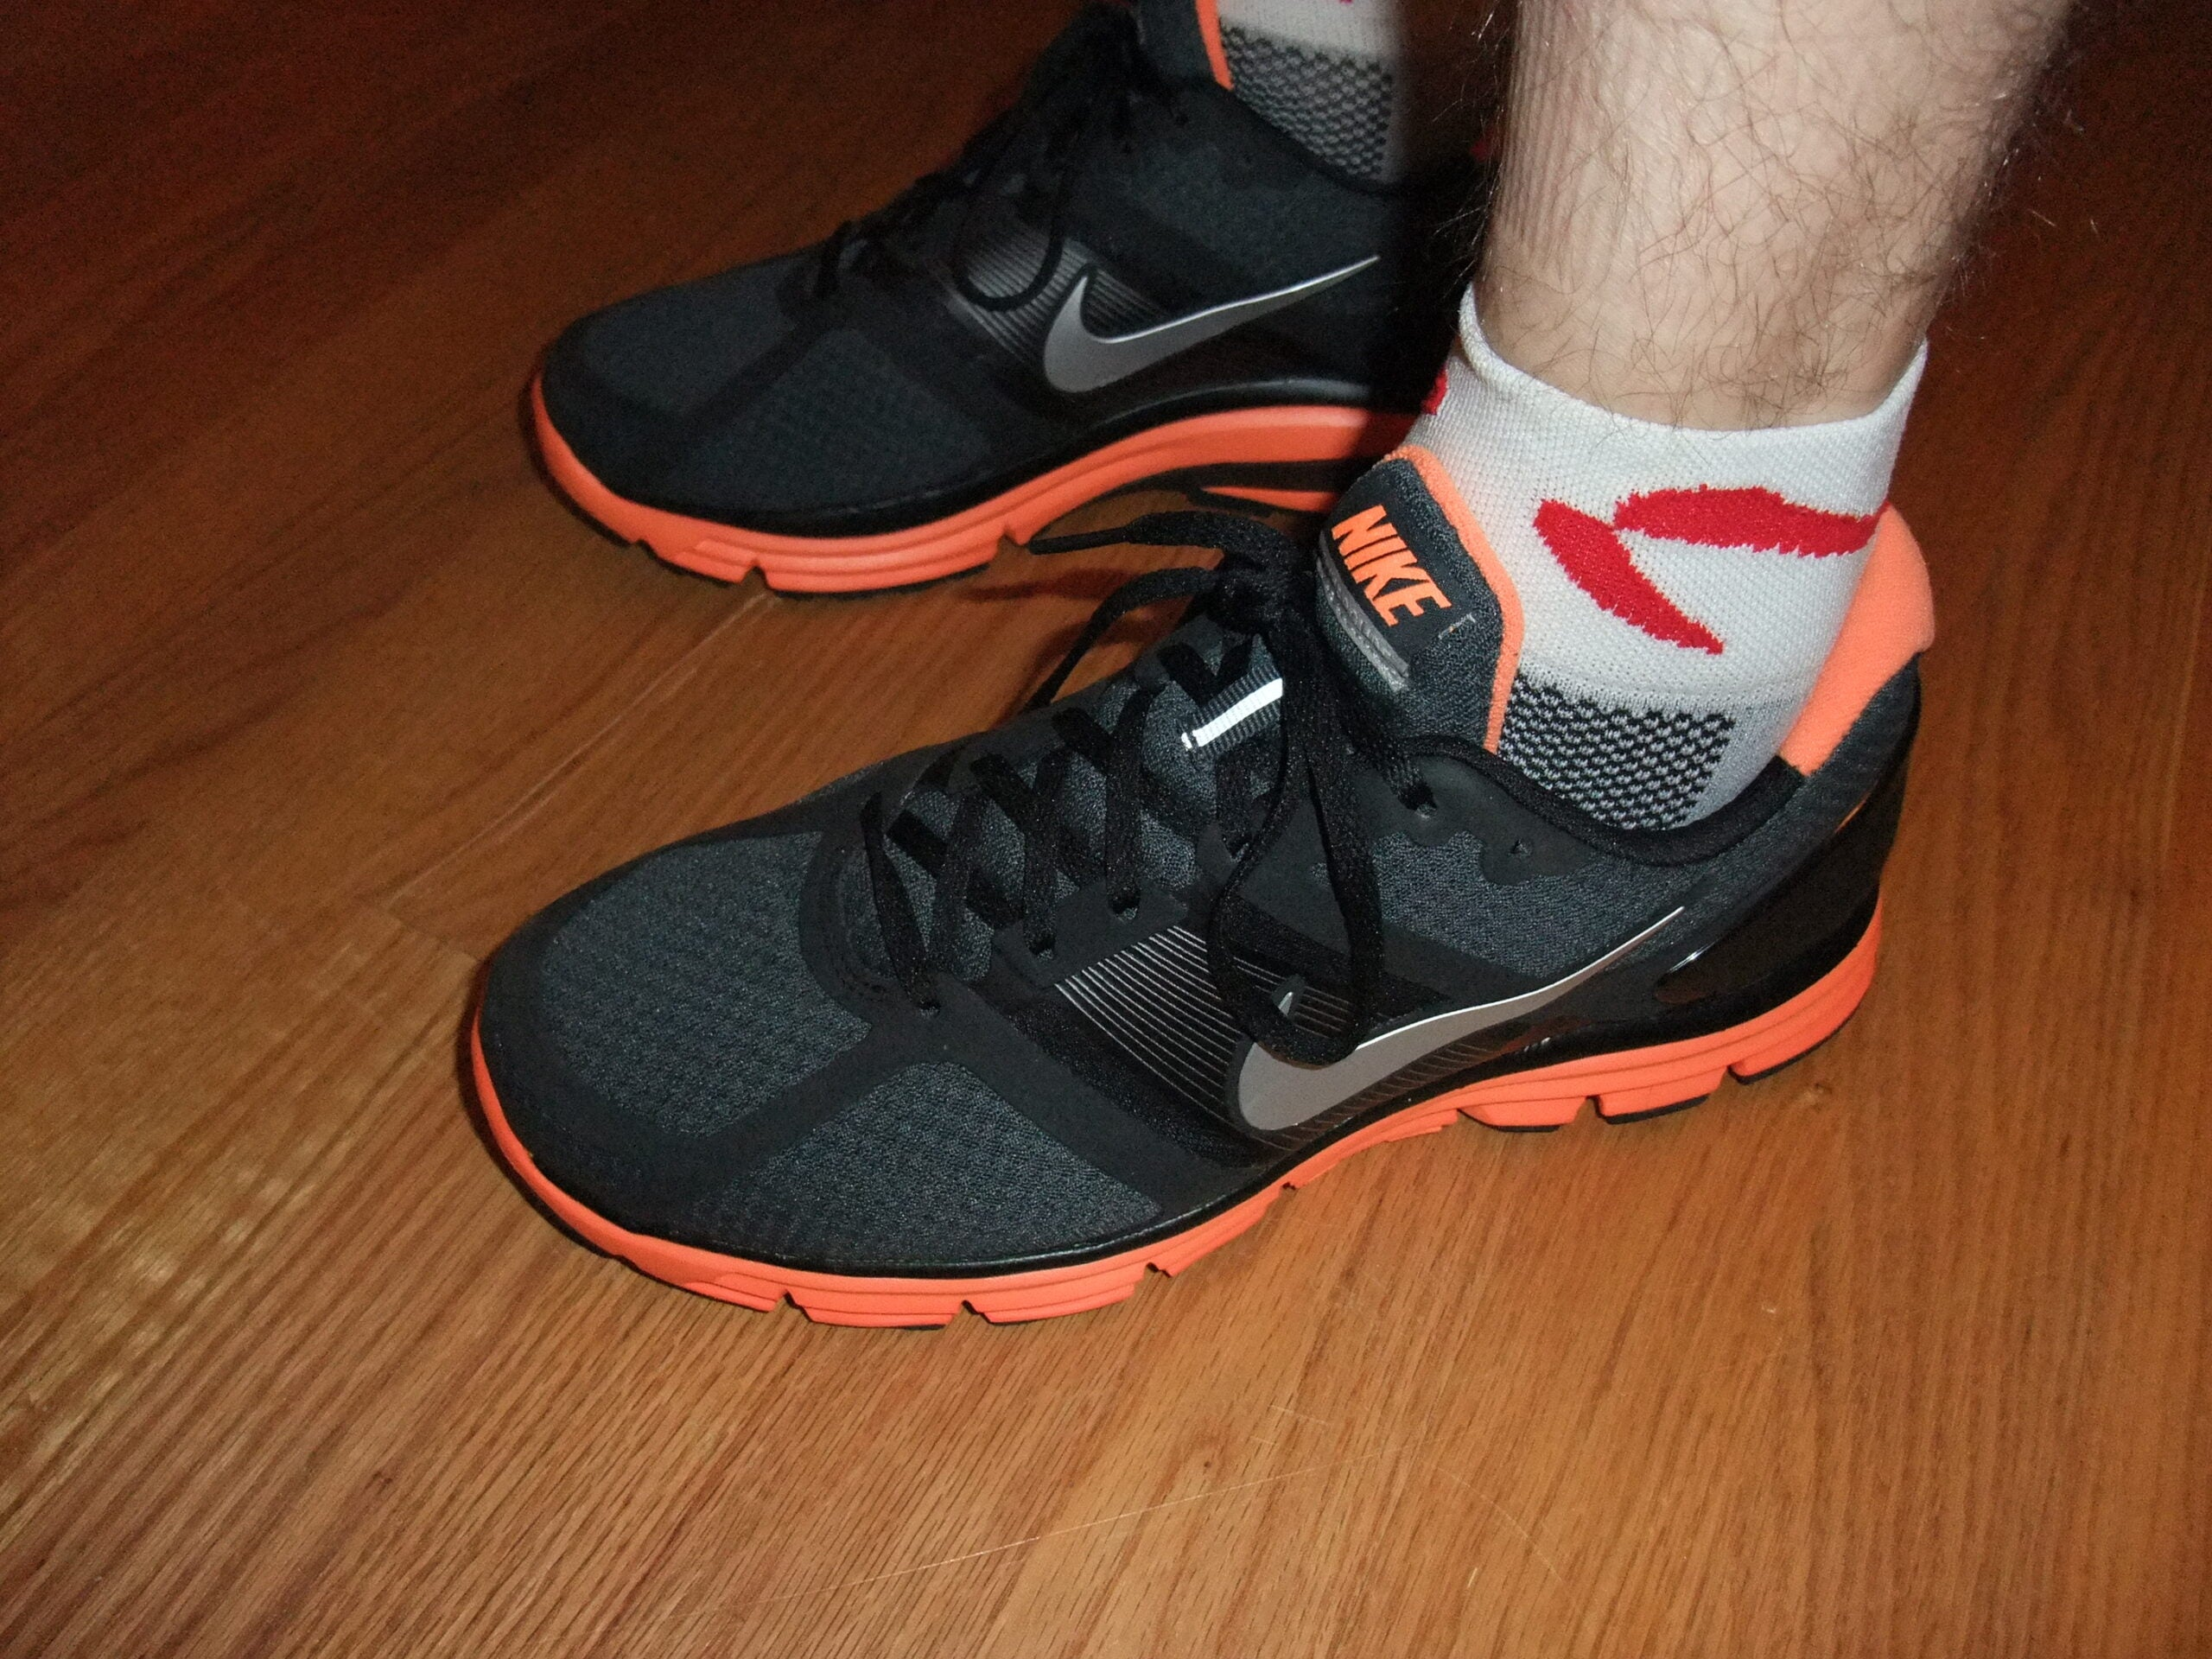 Nike LunarGlide+: the Five-Minute Review